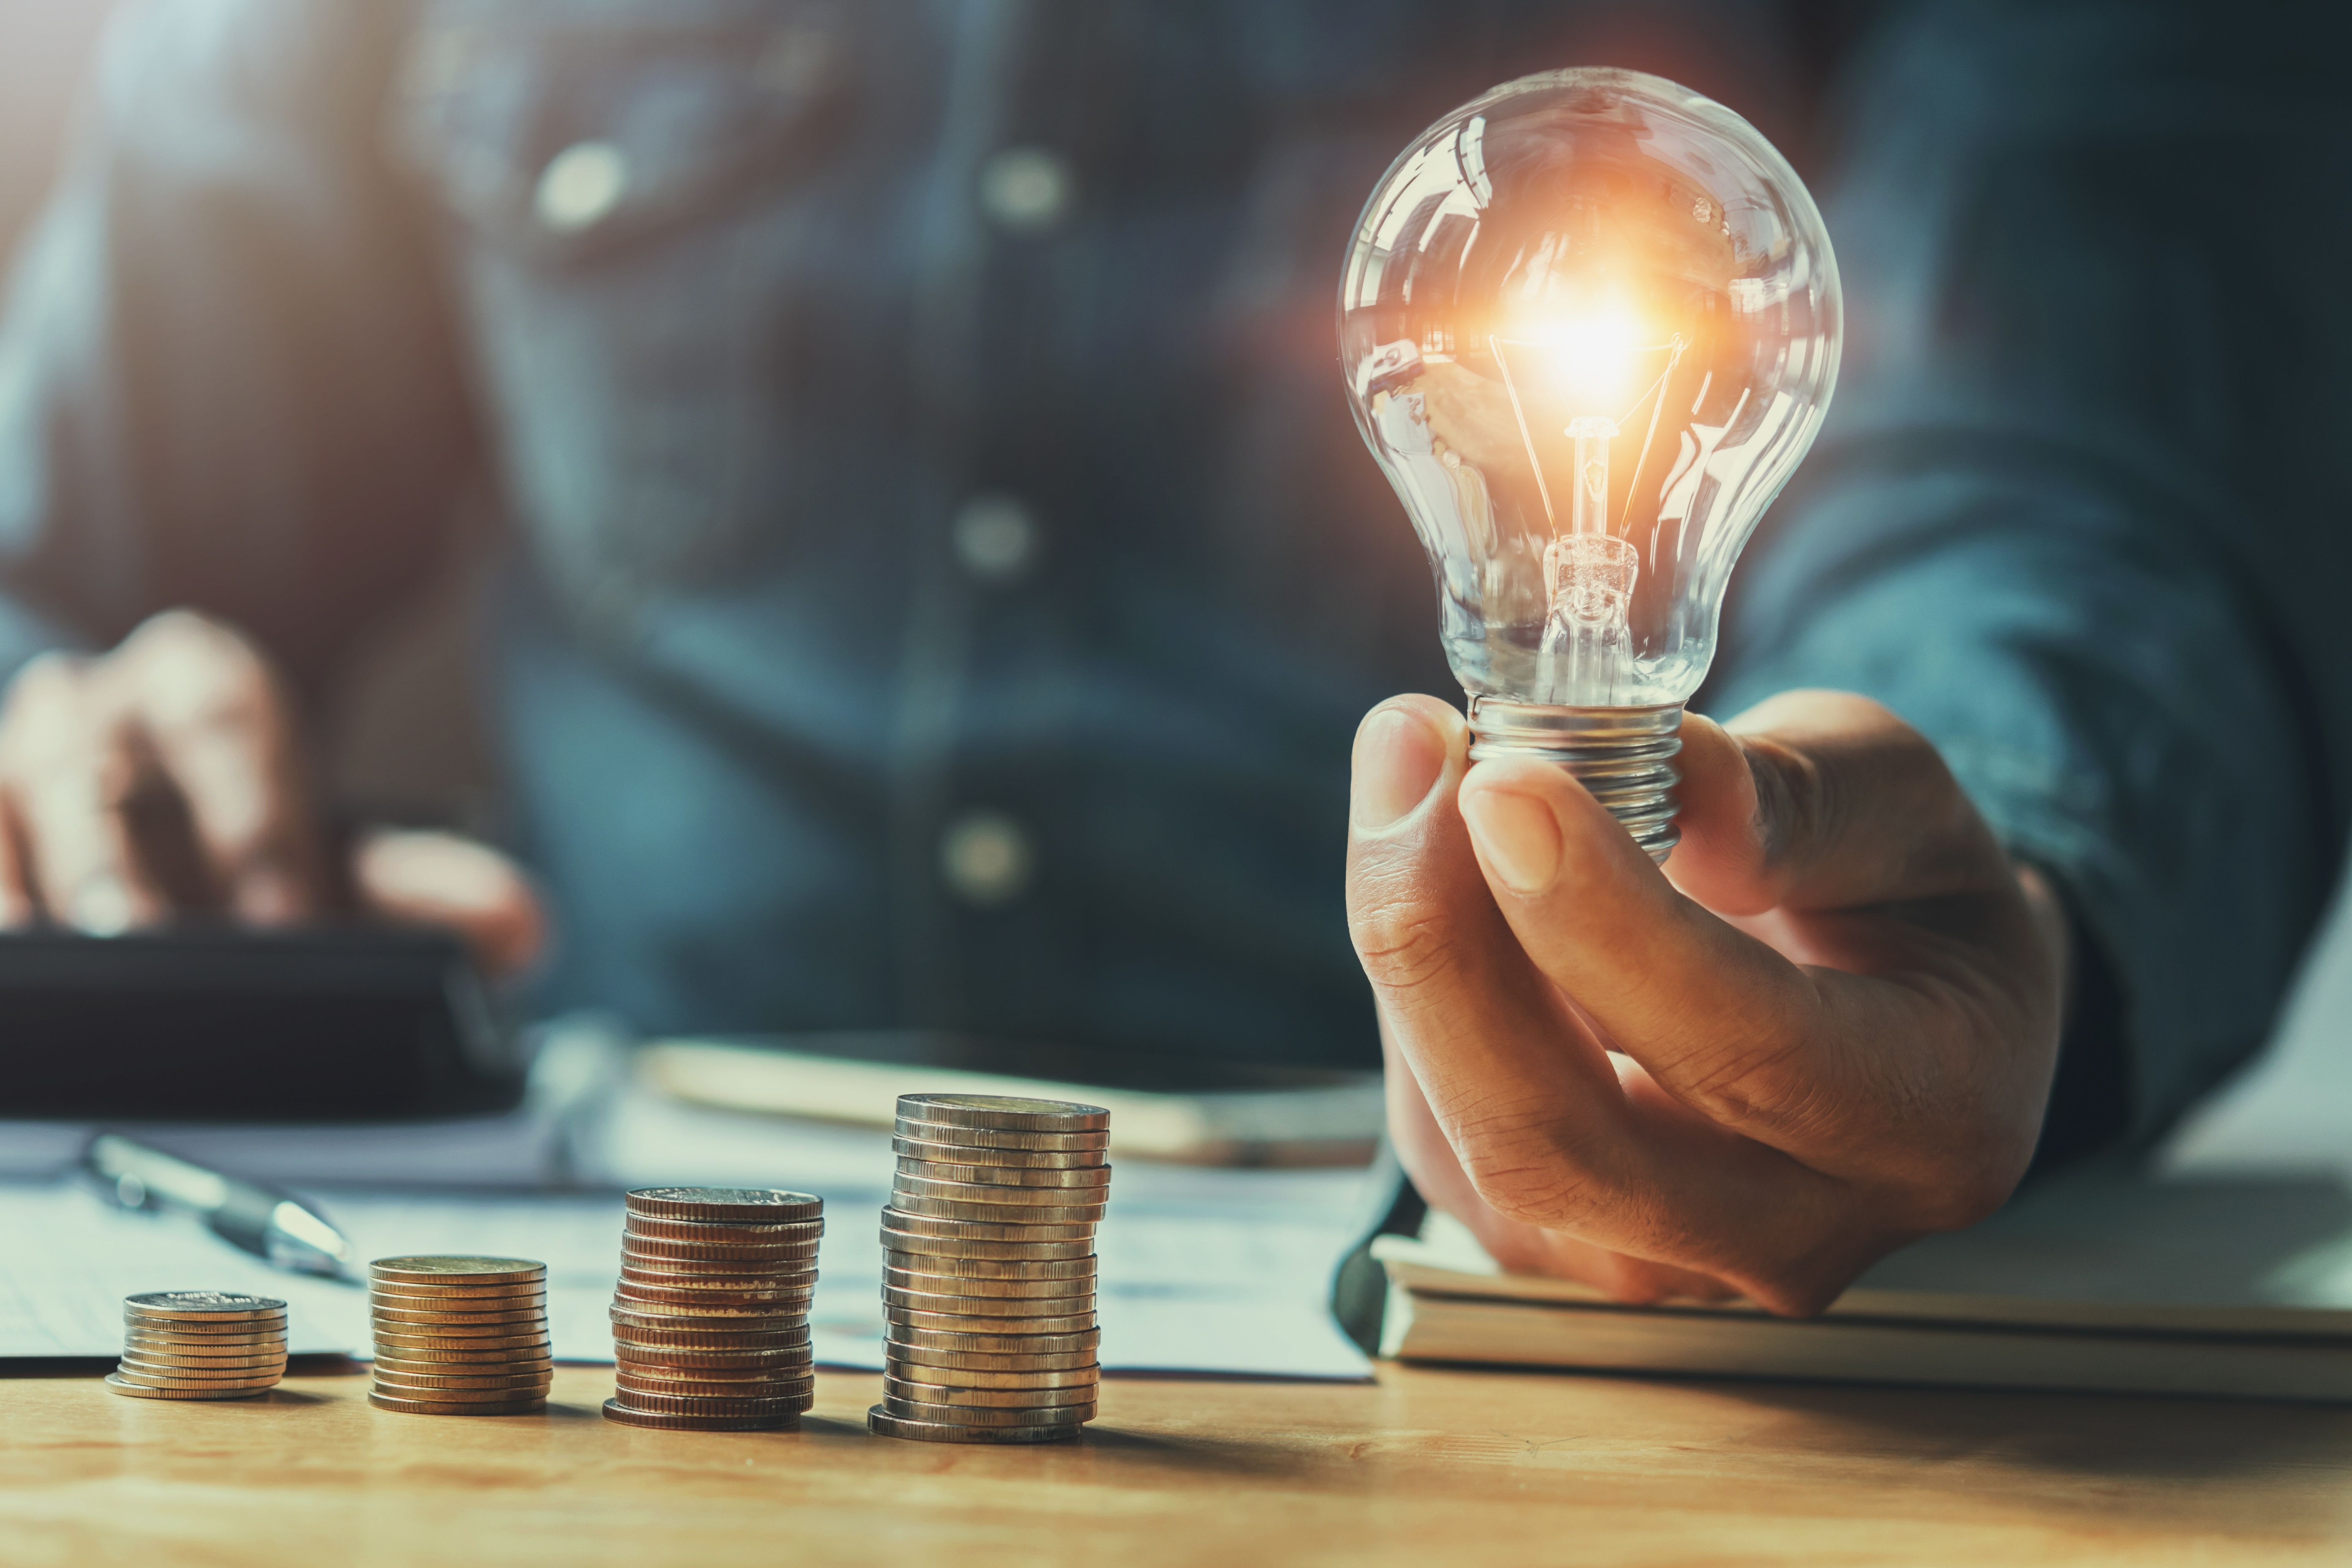 saving money ideas with managed TM services